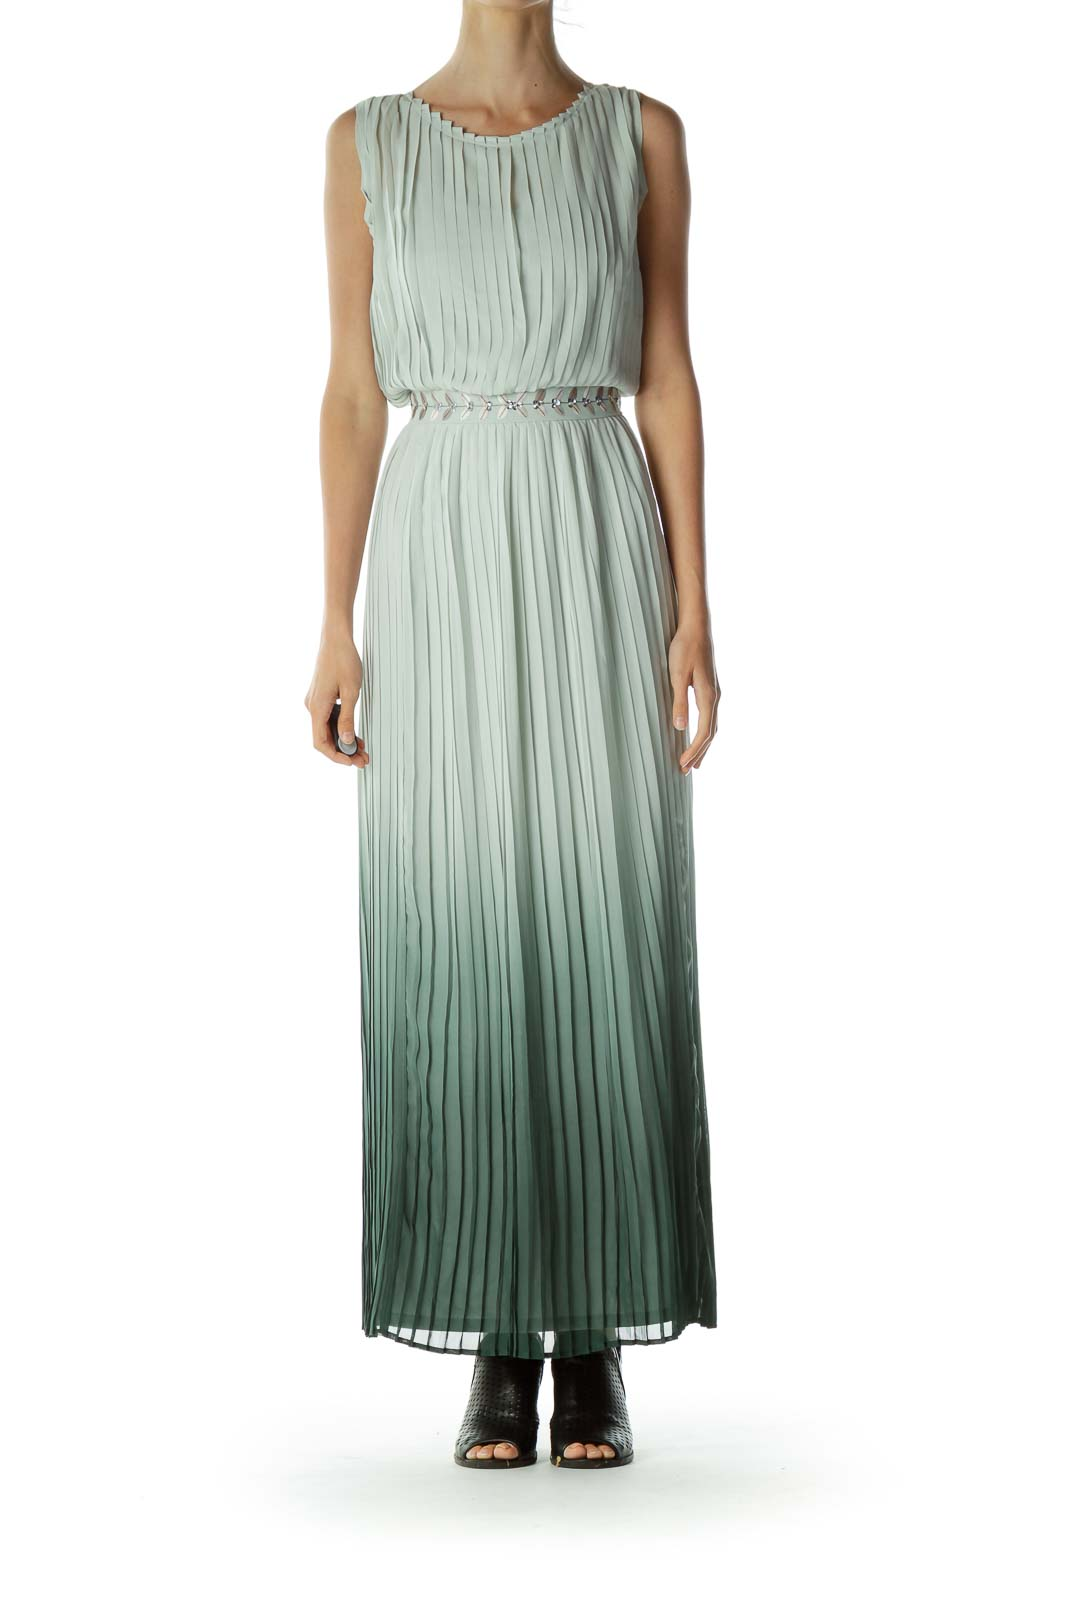 Green Pleated Evening Dress